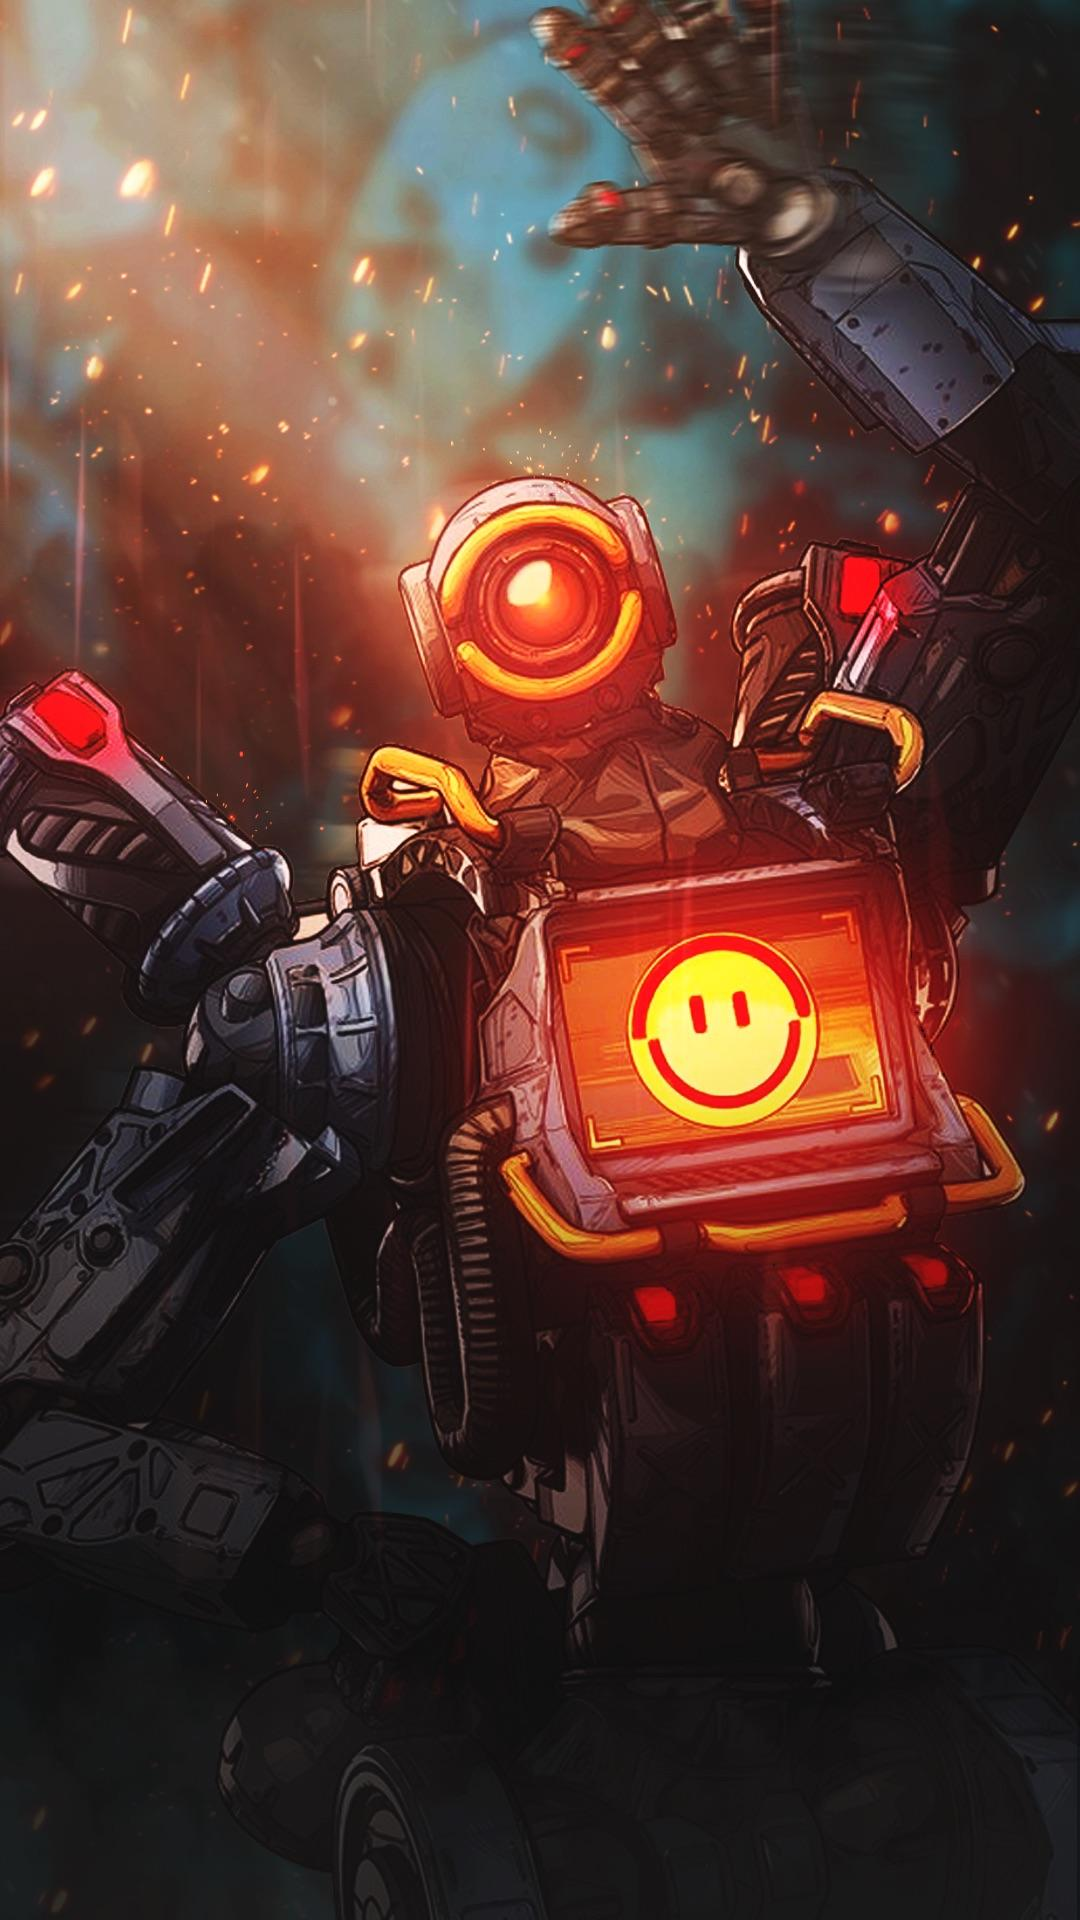 Pathfinder iPhone Wallpaper Apex Legends 4543 Wallpapers and 1080x1920